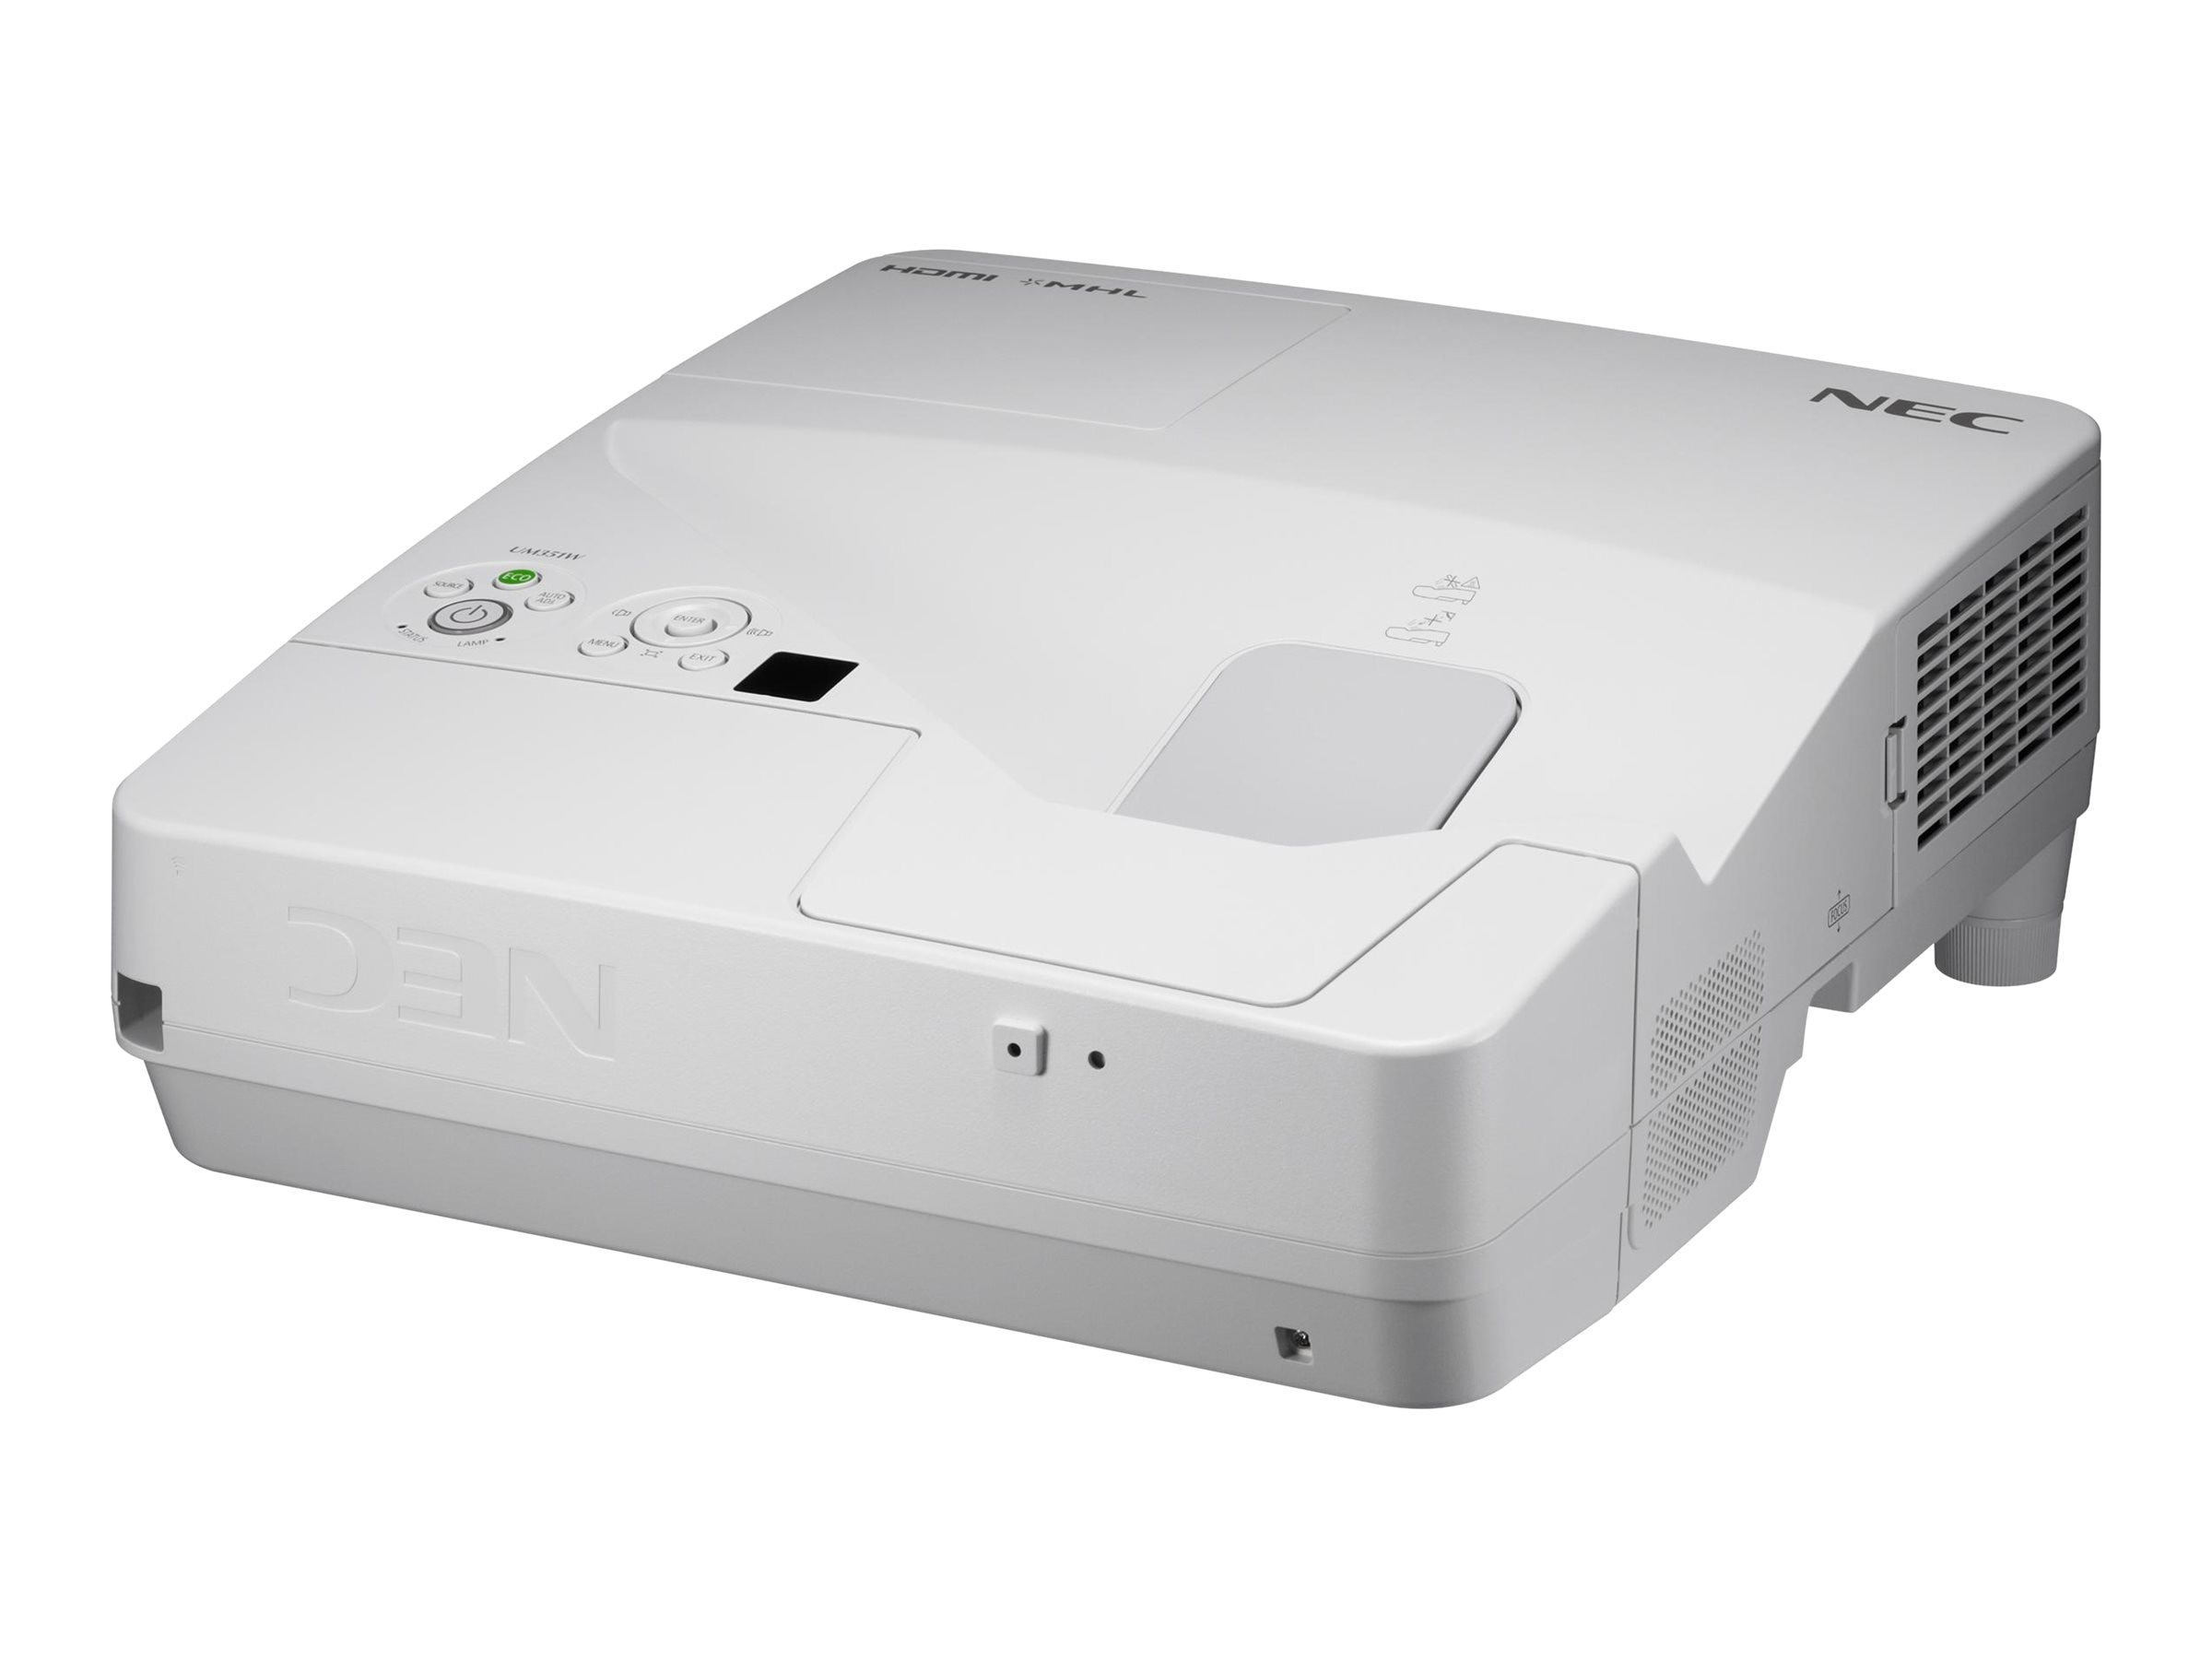 NEC UM351W Ultra Short Throw LCD Projector, 3500 Lumens, White, NP-UM351W, 18193154, Projectors